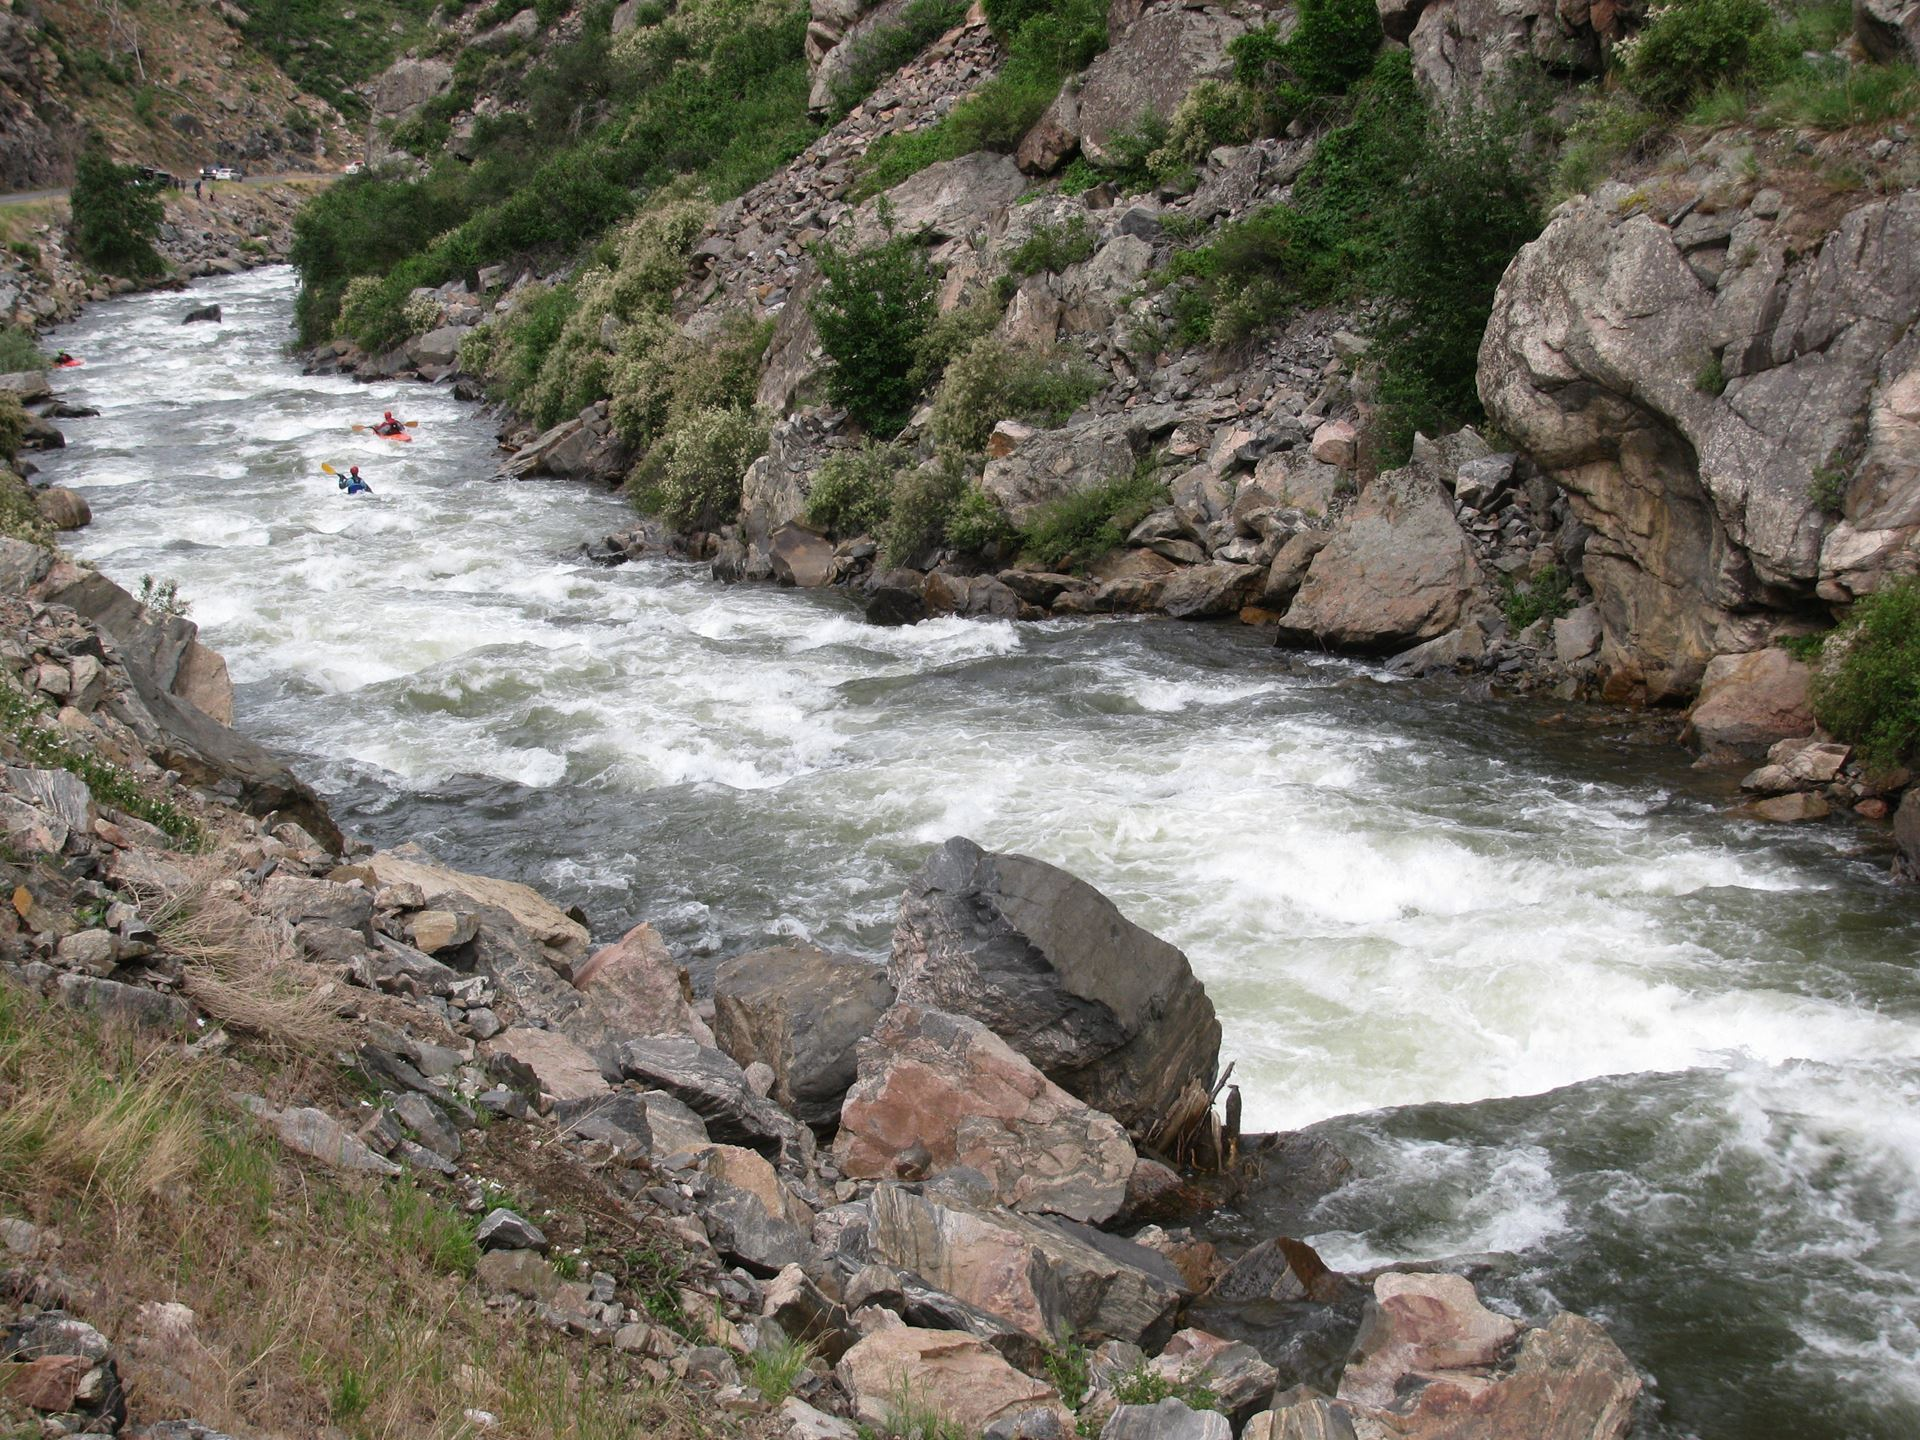 Colorado Whitewater - More on the Peaks to Plains Trail